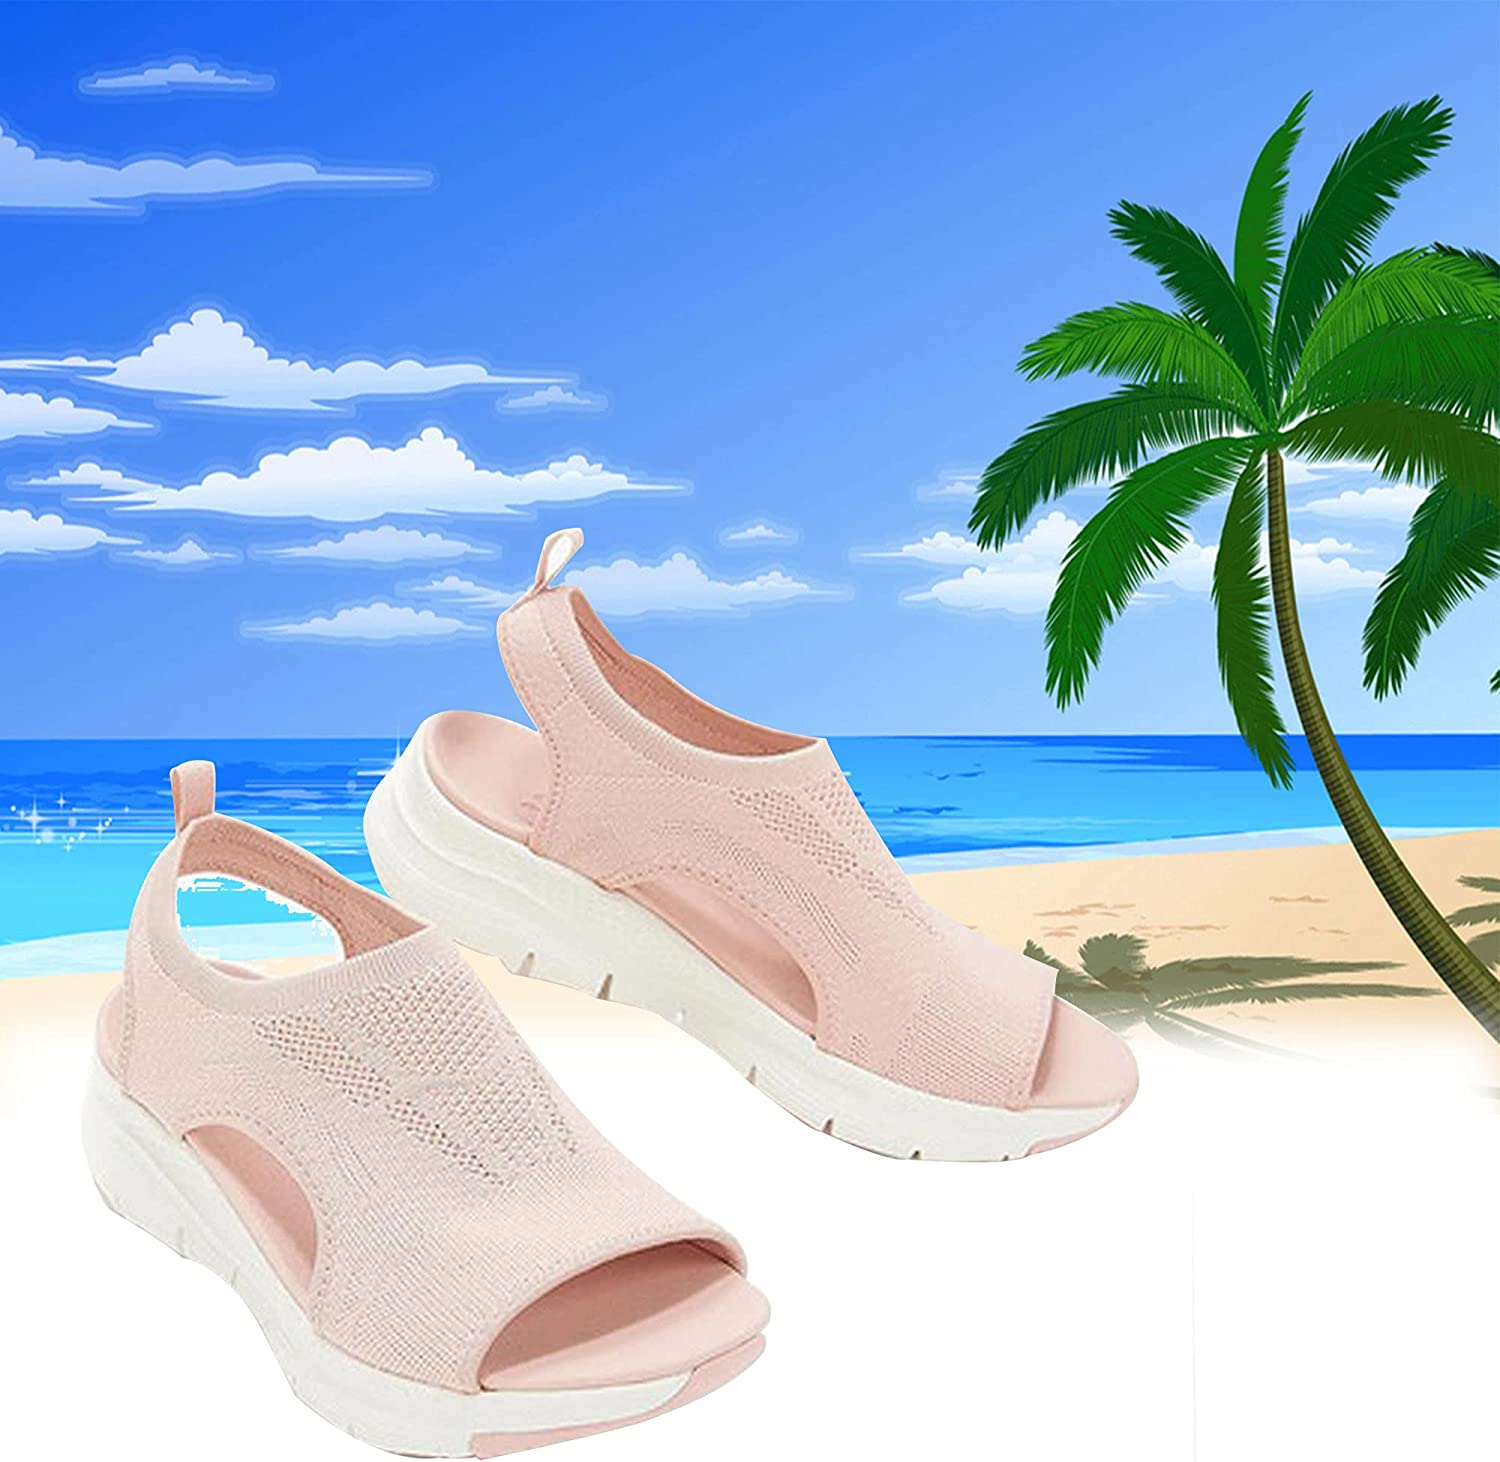 Treonca Summer Slingback Orthopedic Slide Sport Sandals, Comfy Sports Knit Sandals, Gradation Thick Bottom Fish Mouth Beach Casual Sandals (Pink,35)